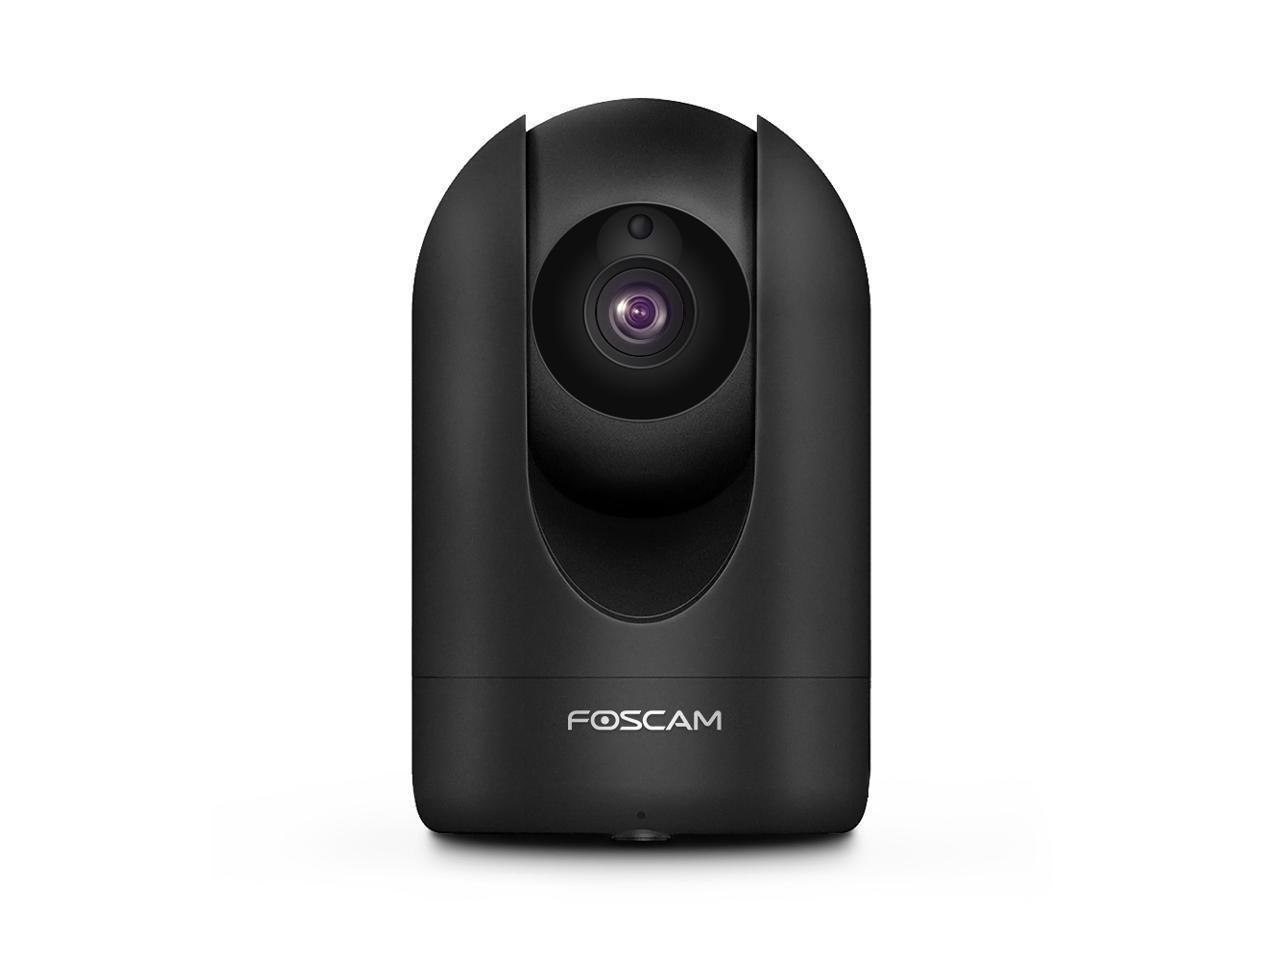 Foscam R2C 1080p HD Wi-Fi IP Camera with Free 8-Hour Rolling Cloud Storage